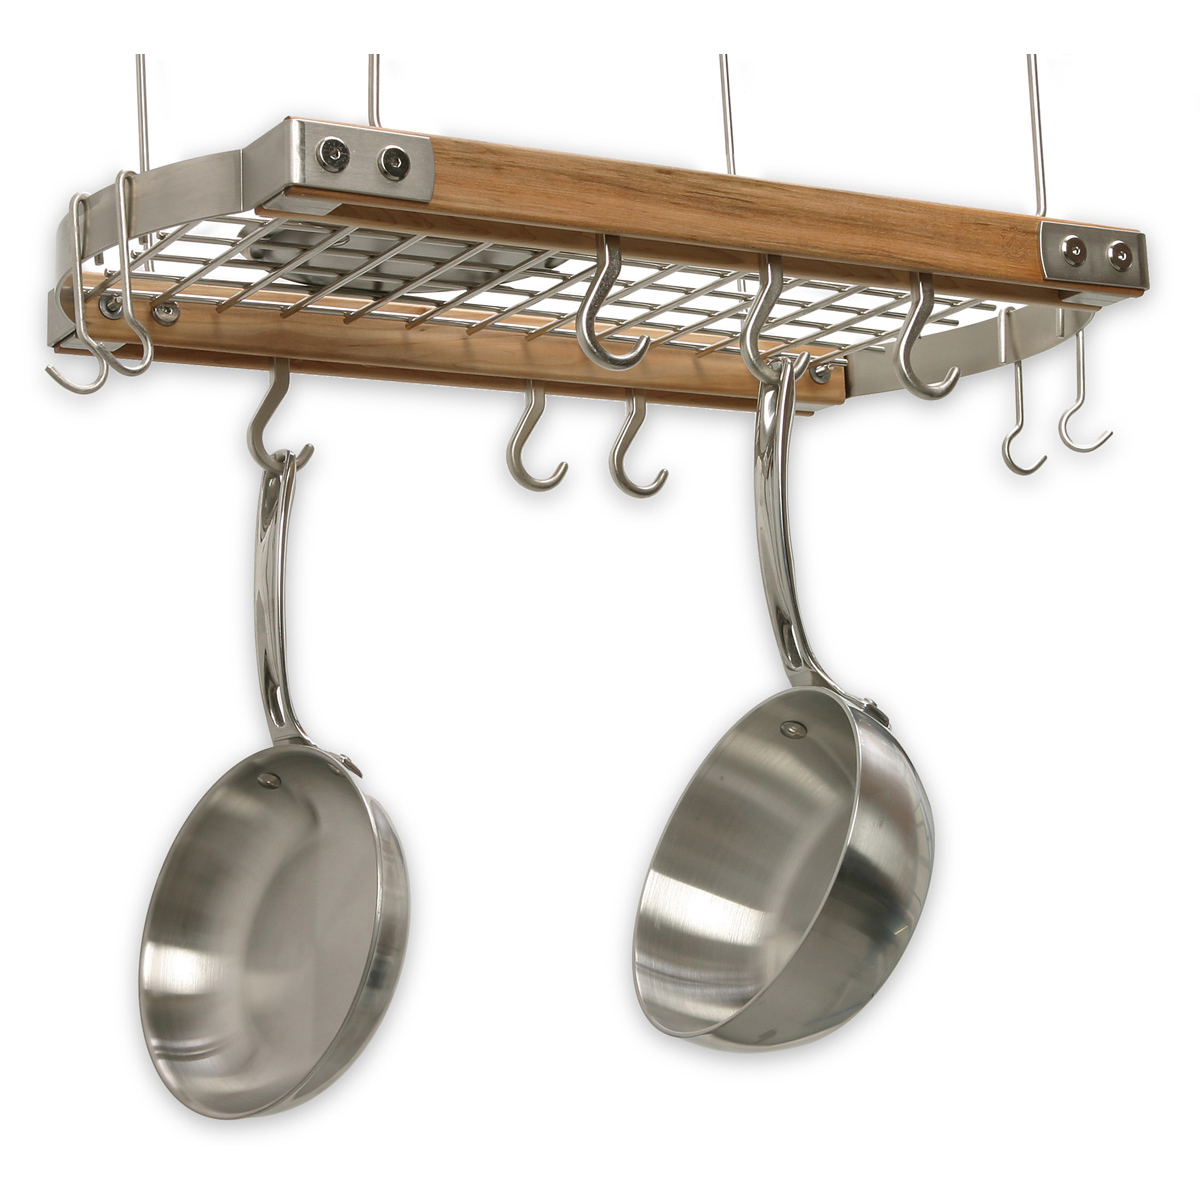 Wood pot racks hanging pot racks wall mounted pot racks JK Adams